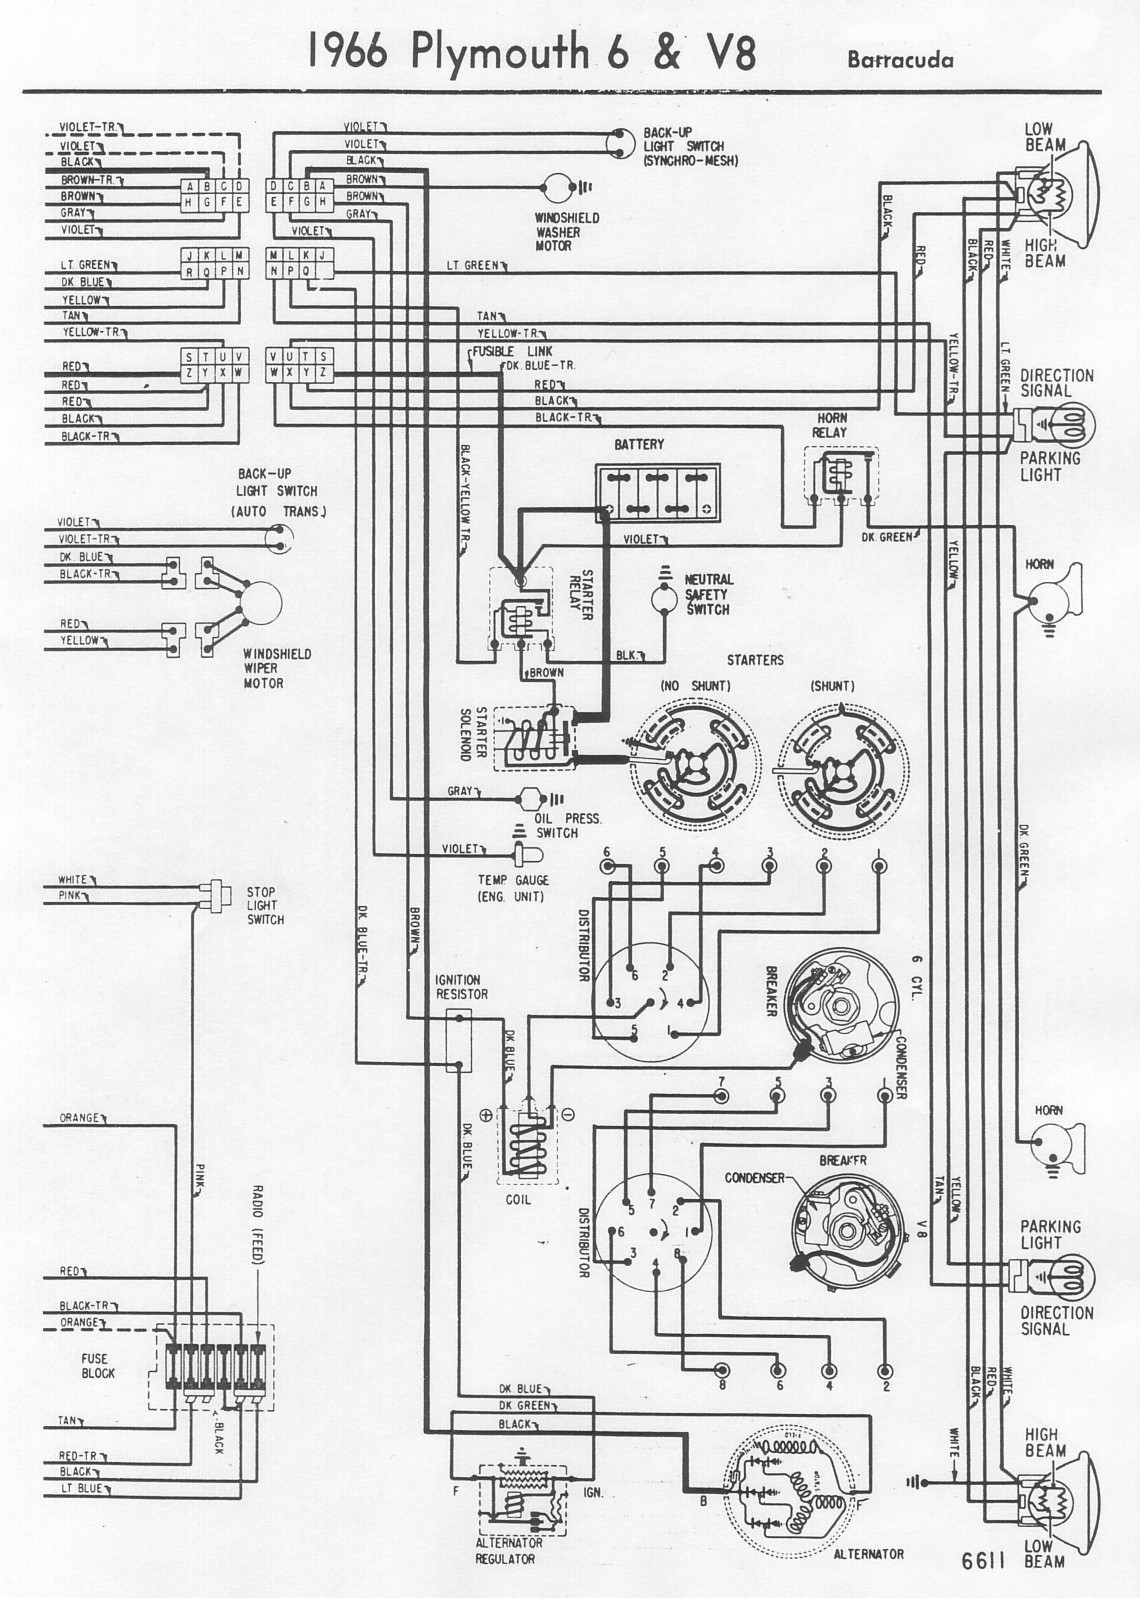 1966 plymouth fury alternator wiring diagram 1970 dodge